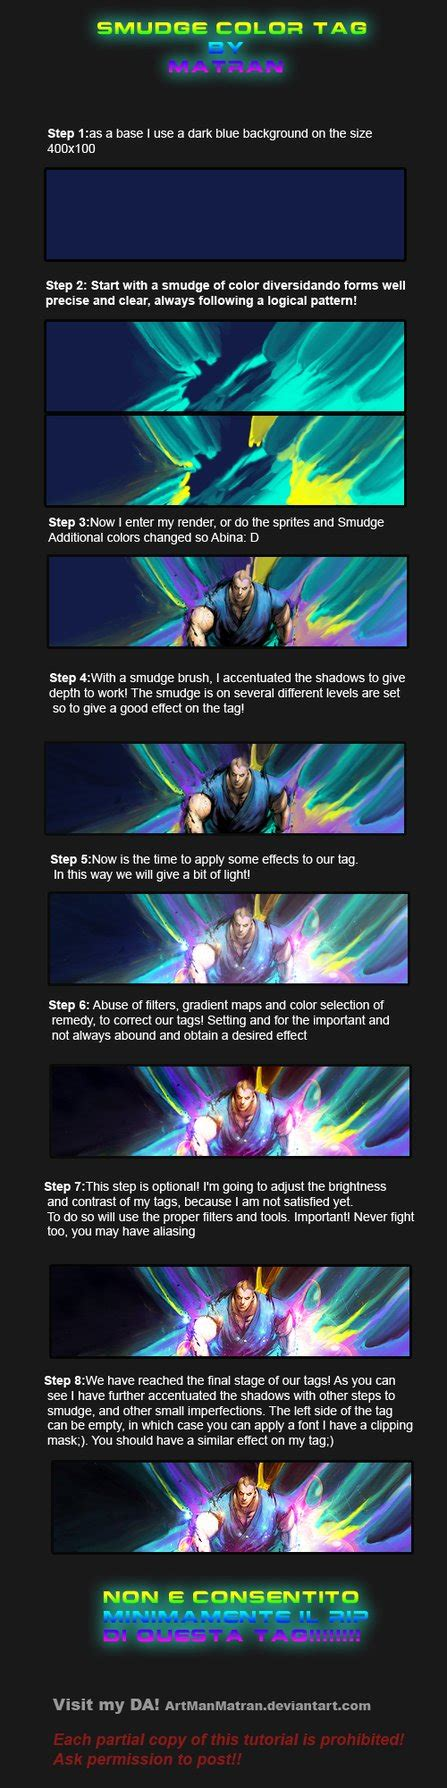 tutorial smudge painting pdf smudge color tutorial english by artmanmatran on deviantart